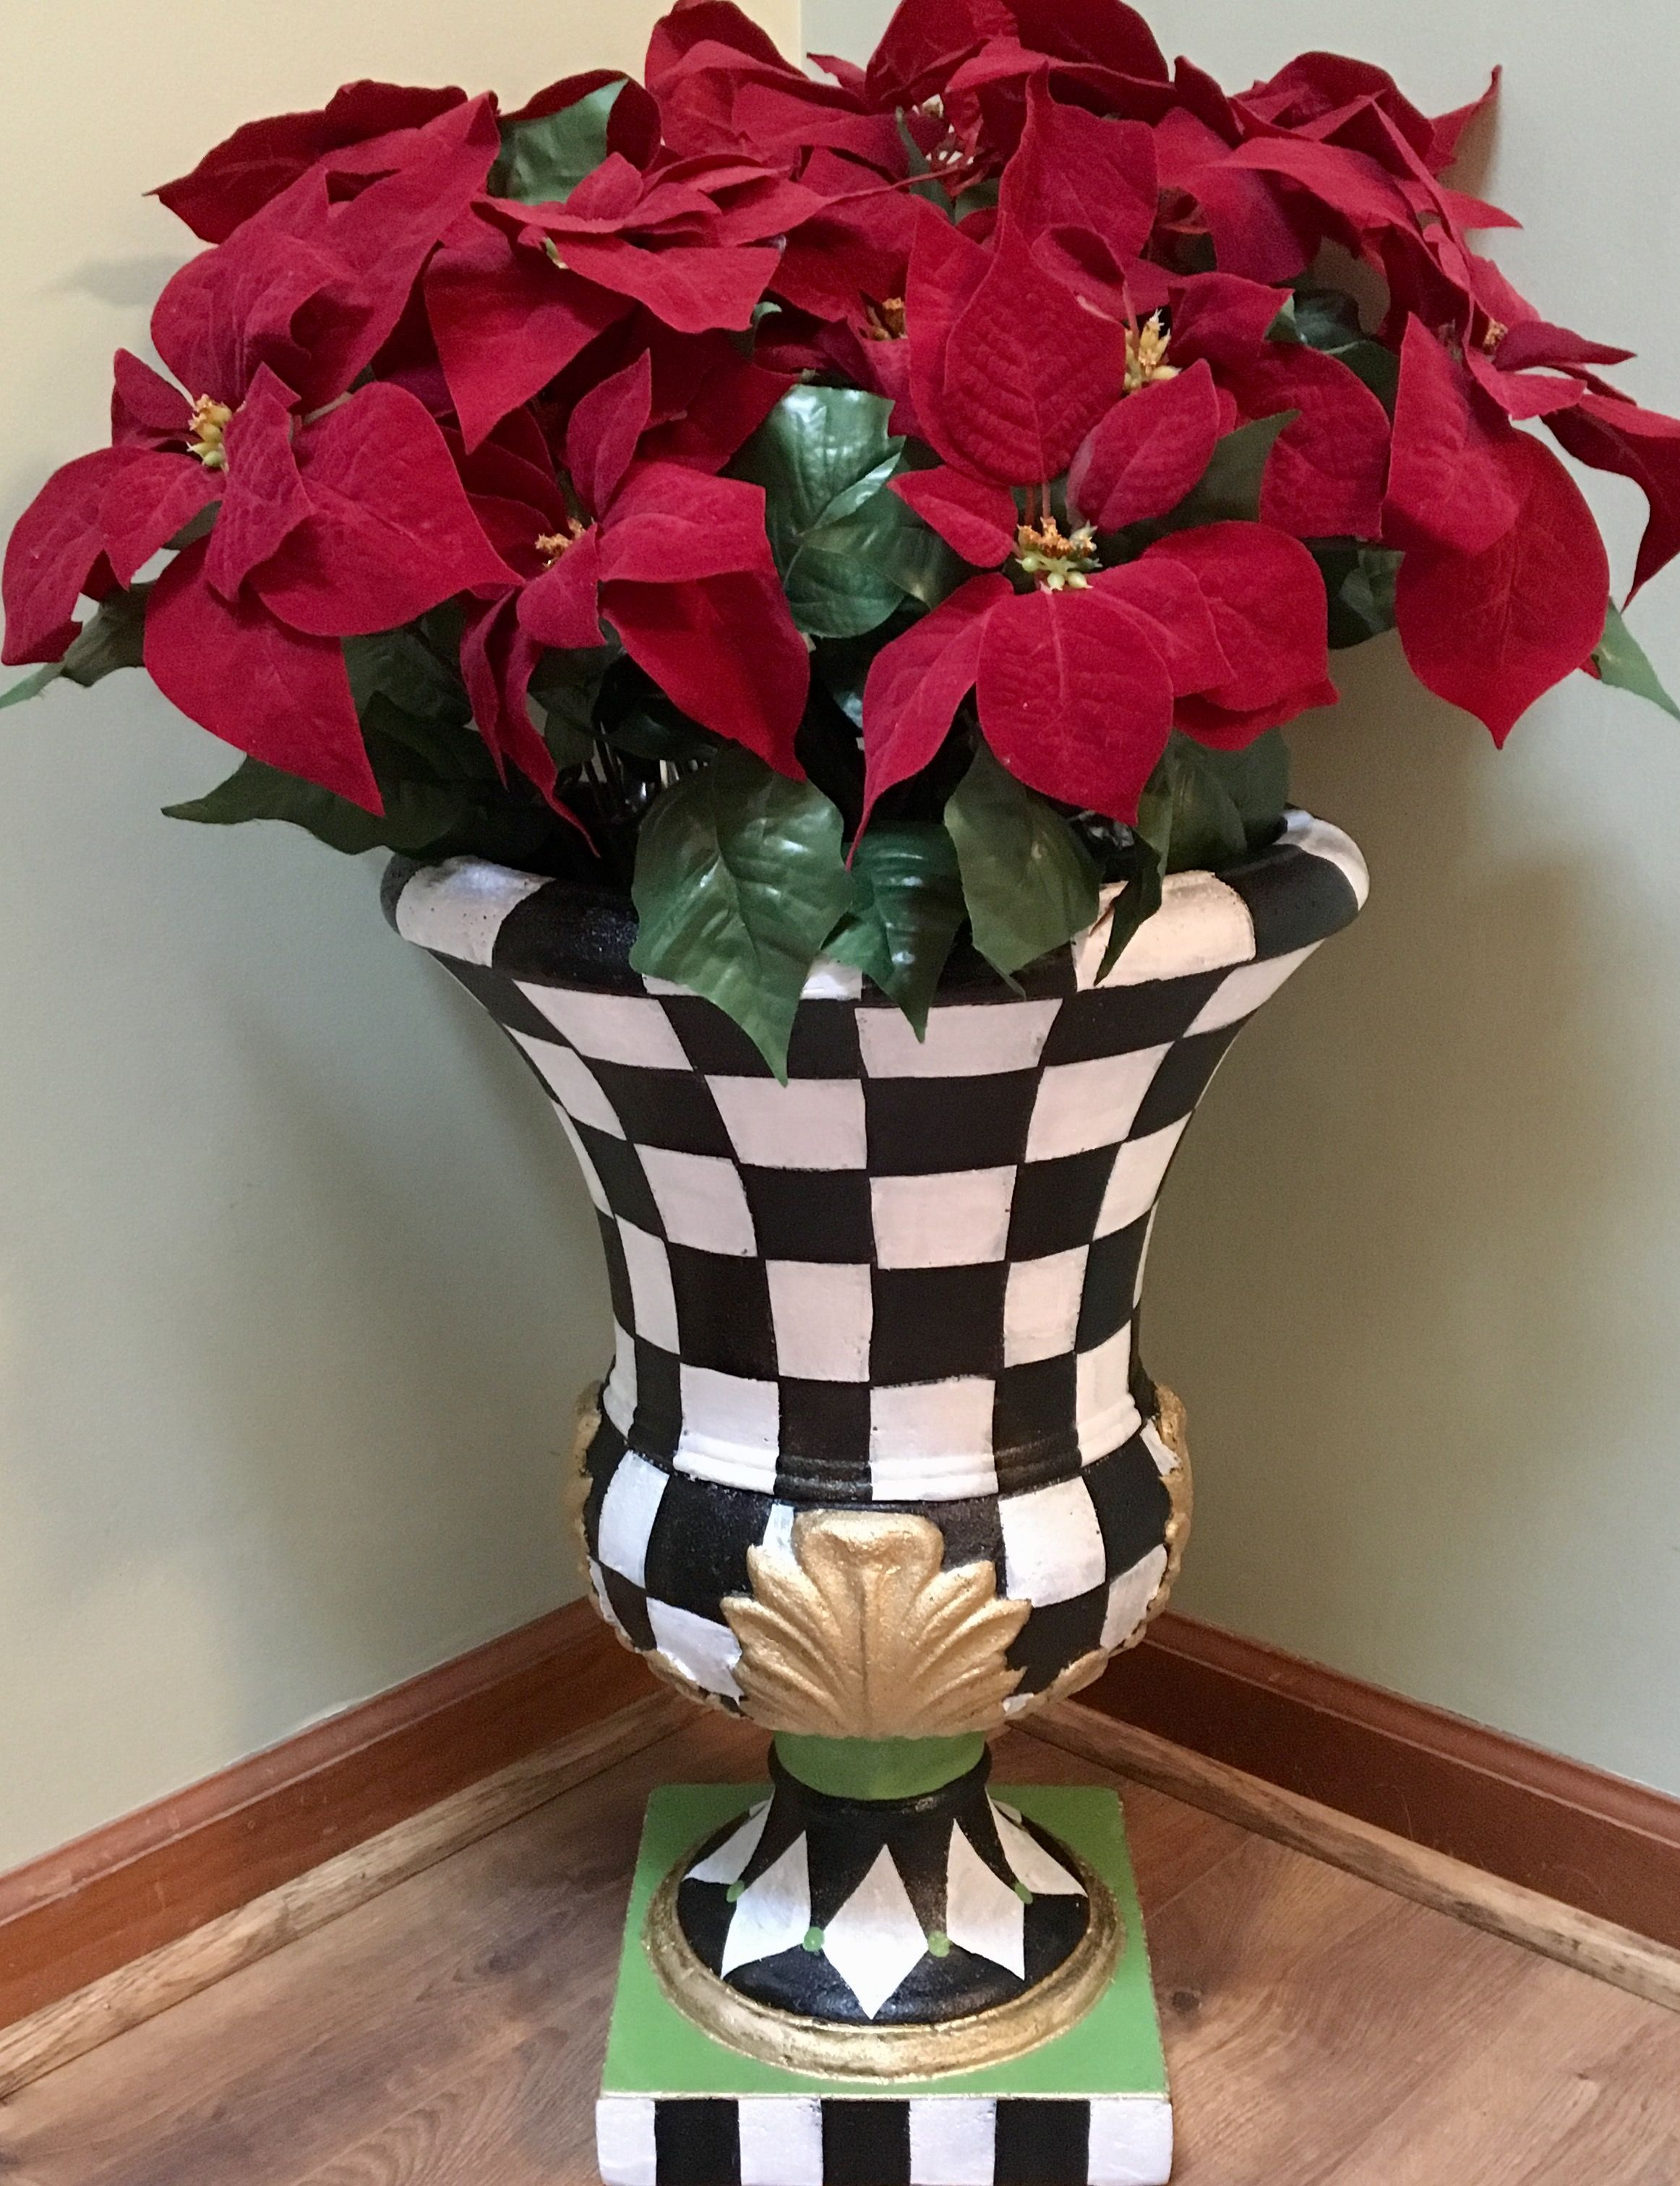 Buy Custom Whimsical Painted Urn Planter Urn Planter Indoor Outdoor Planter Whimsical Home Decor Made To Order From Michele Sprague Design Custommade Com